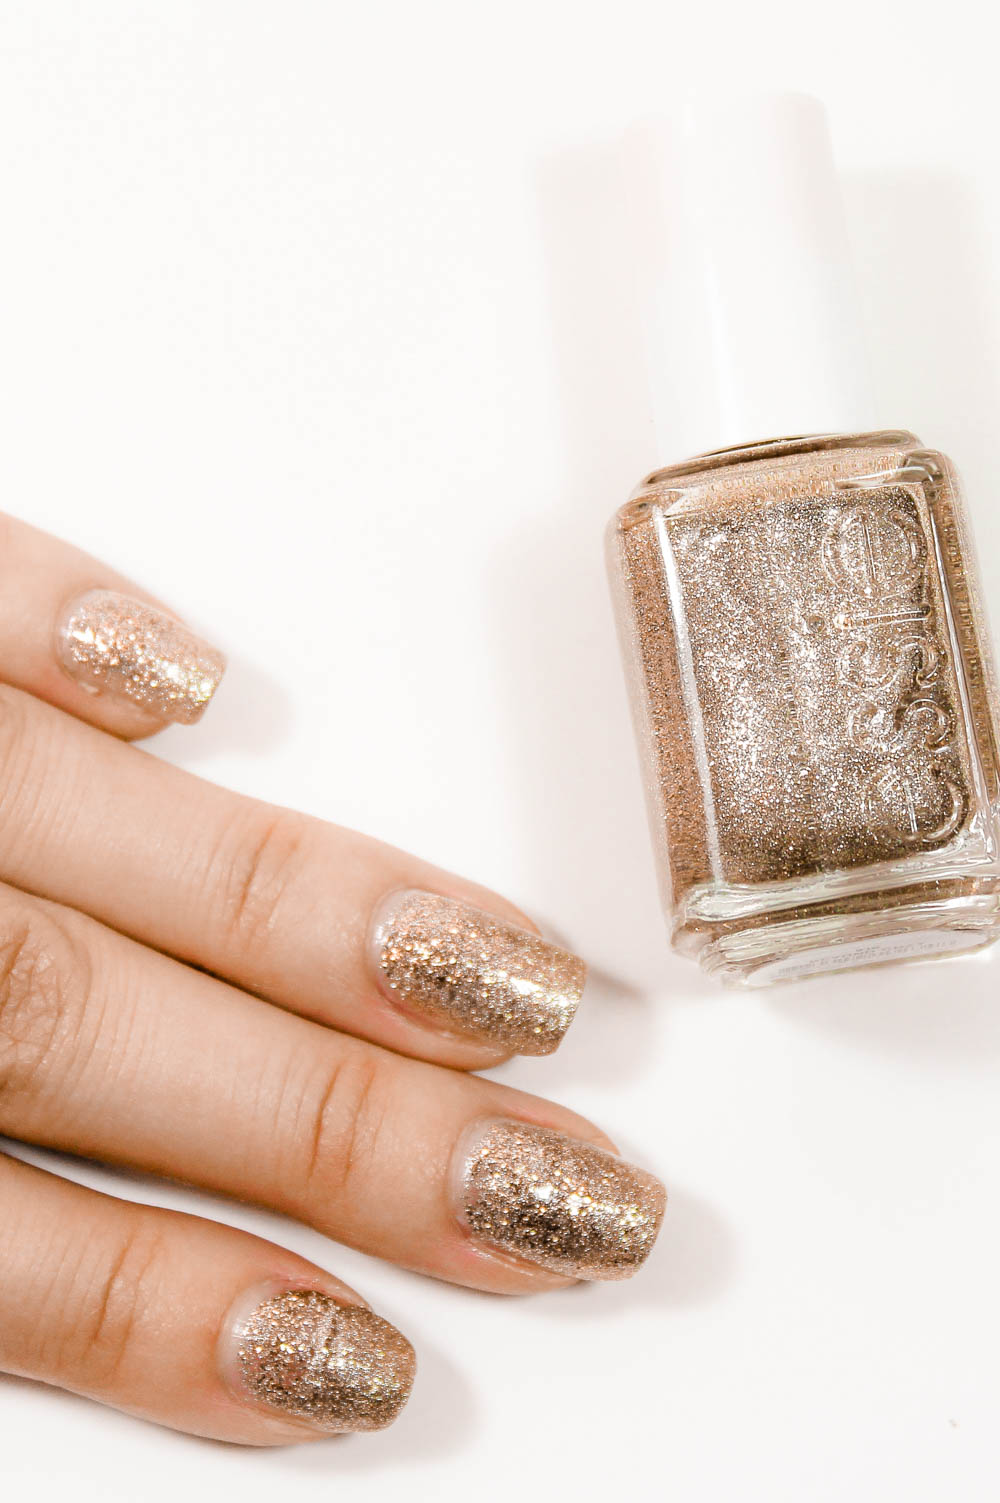 Gold Glitter Nail Polish Manicure | Awards Season Inspired Gold ...